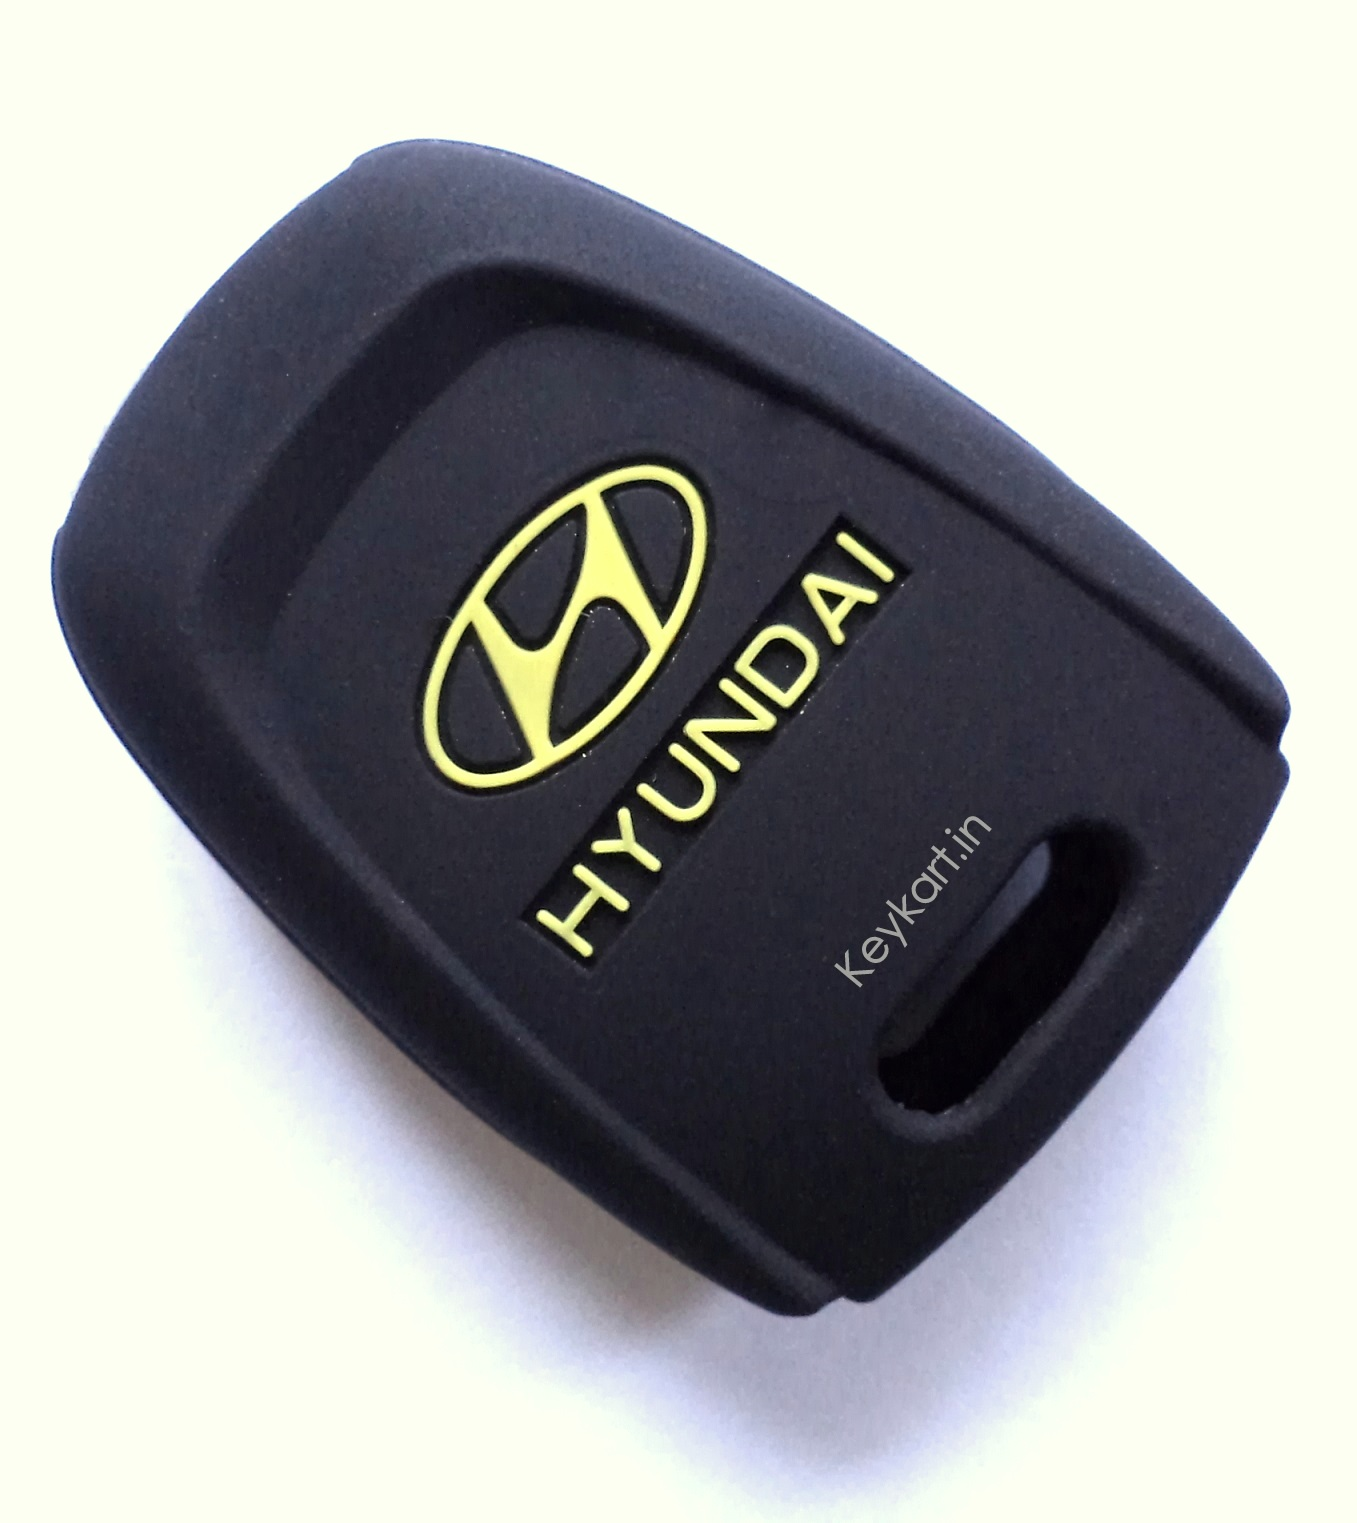 HYUNDAI GRAND I10 2 BUTTON REMOTE KEY SILICONE KEY COVER - BLACK+YELLOW